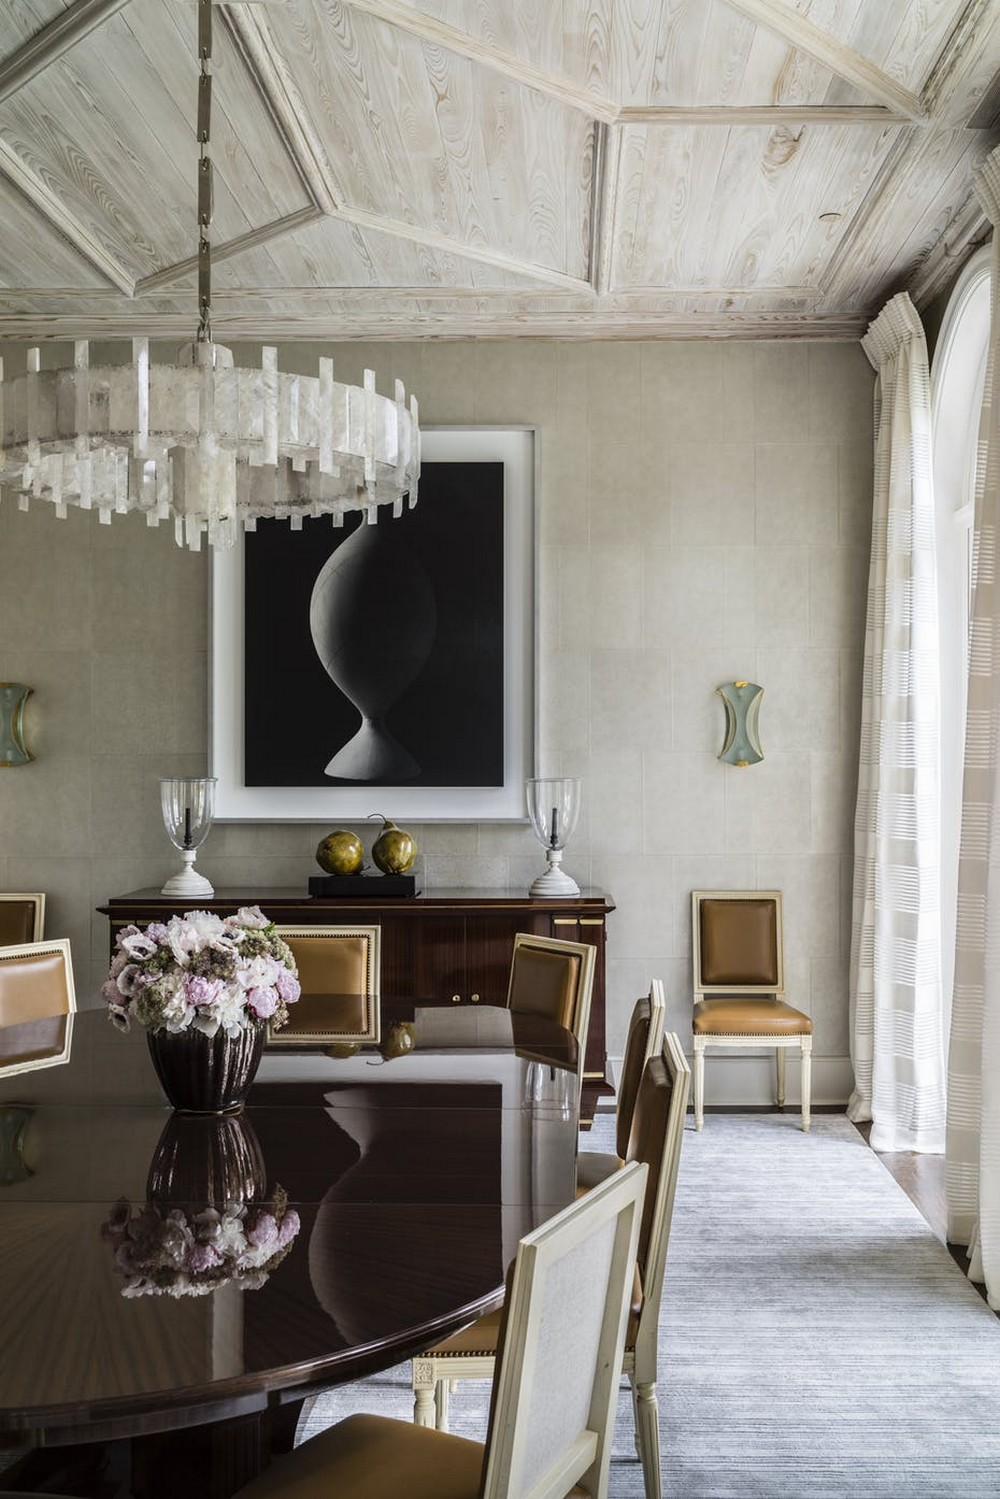 When Modern Means Timeless: Dining Rooms by David Kleinberg david kleinberg When Modern Means Timeless: Dining Rooms by David Kleinberg 4 dering hall